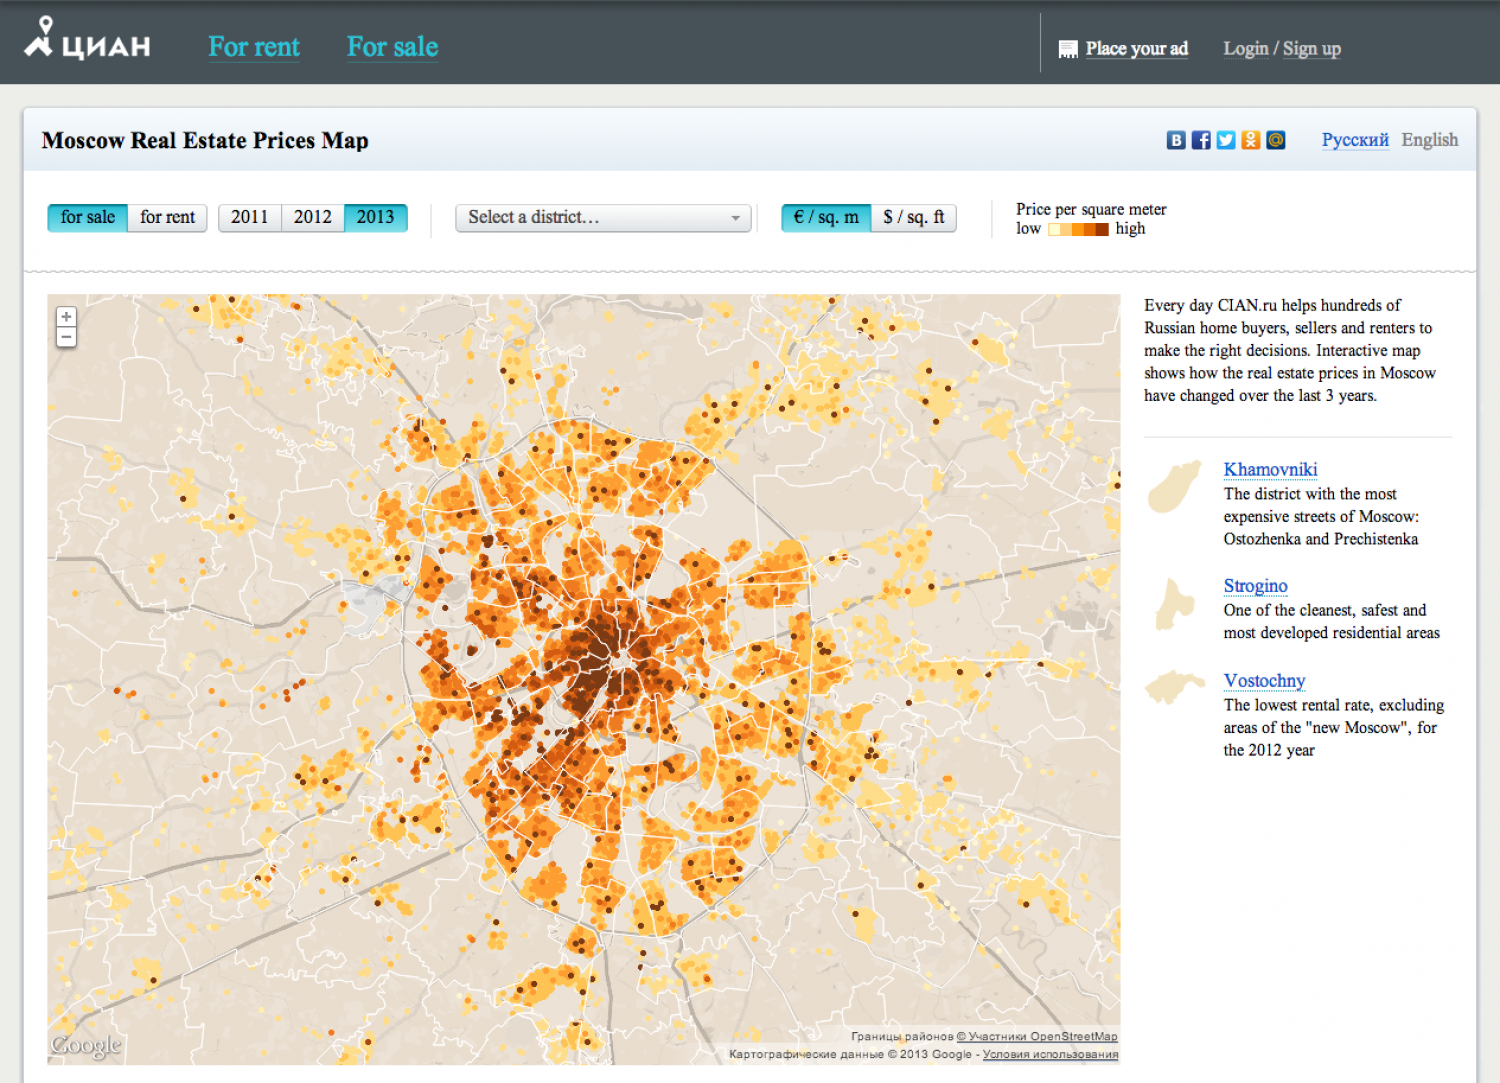 CIAN — Moscow Real Estate Prices Map Infographic